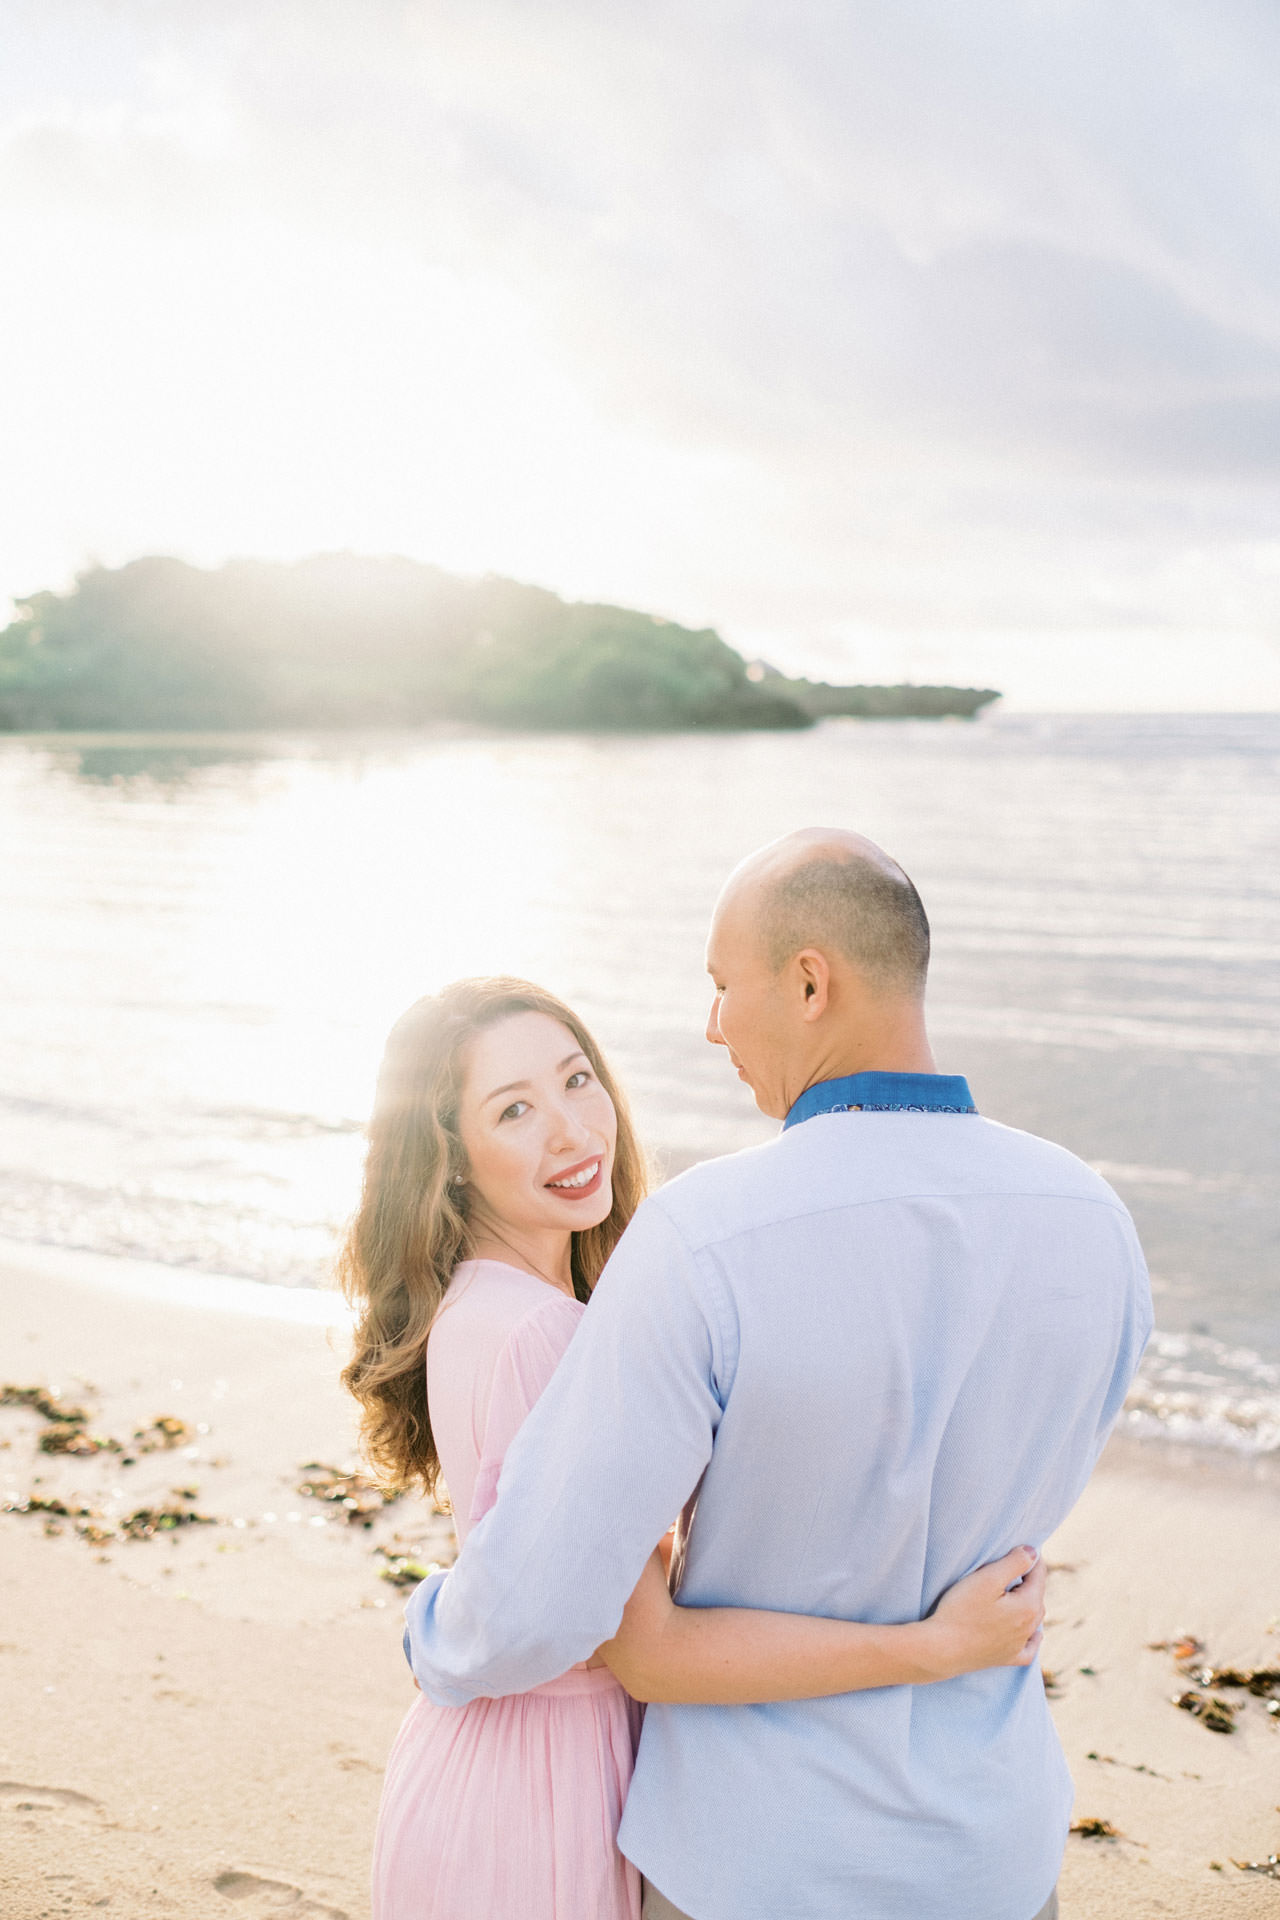 N&D: Sunrise Melasti Beach Bali Prewedding Photos 3